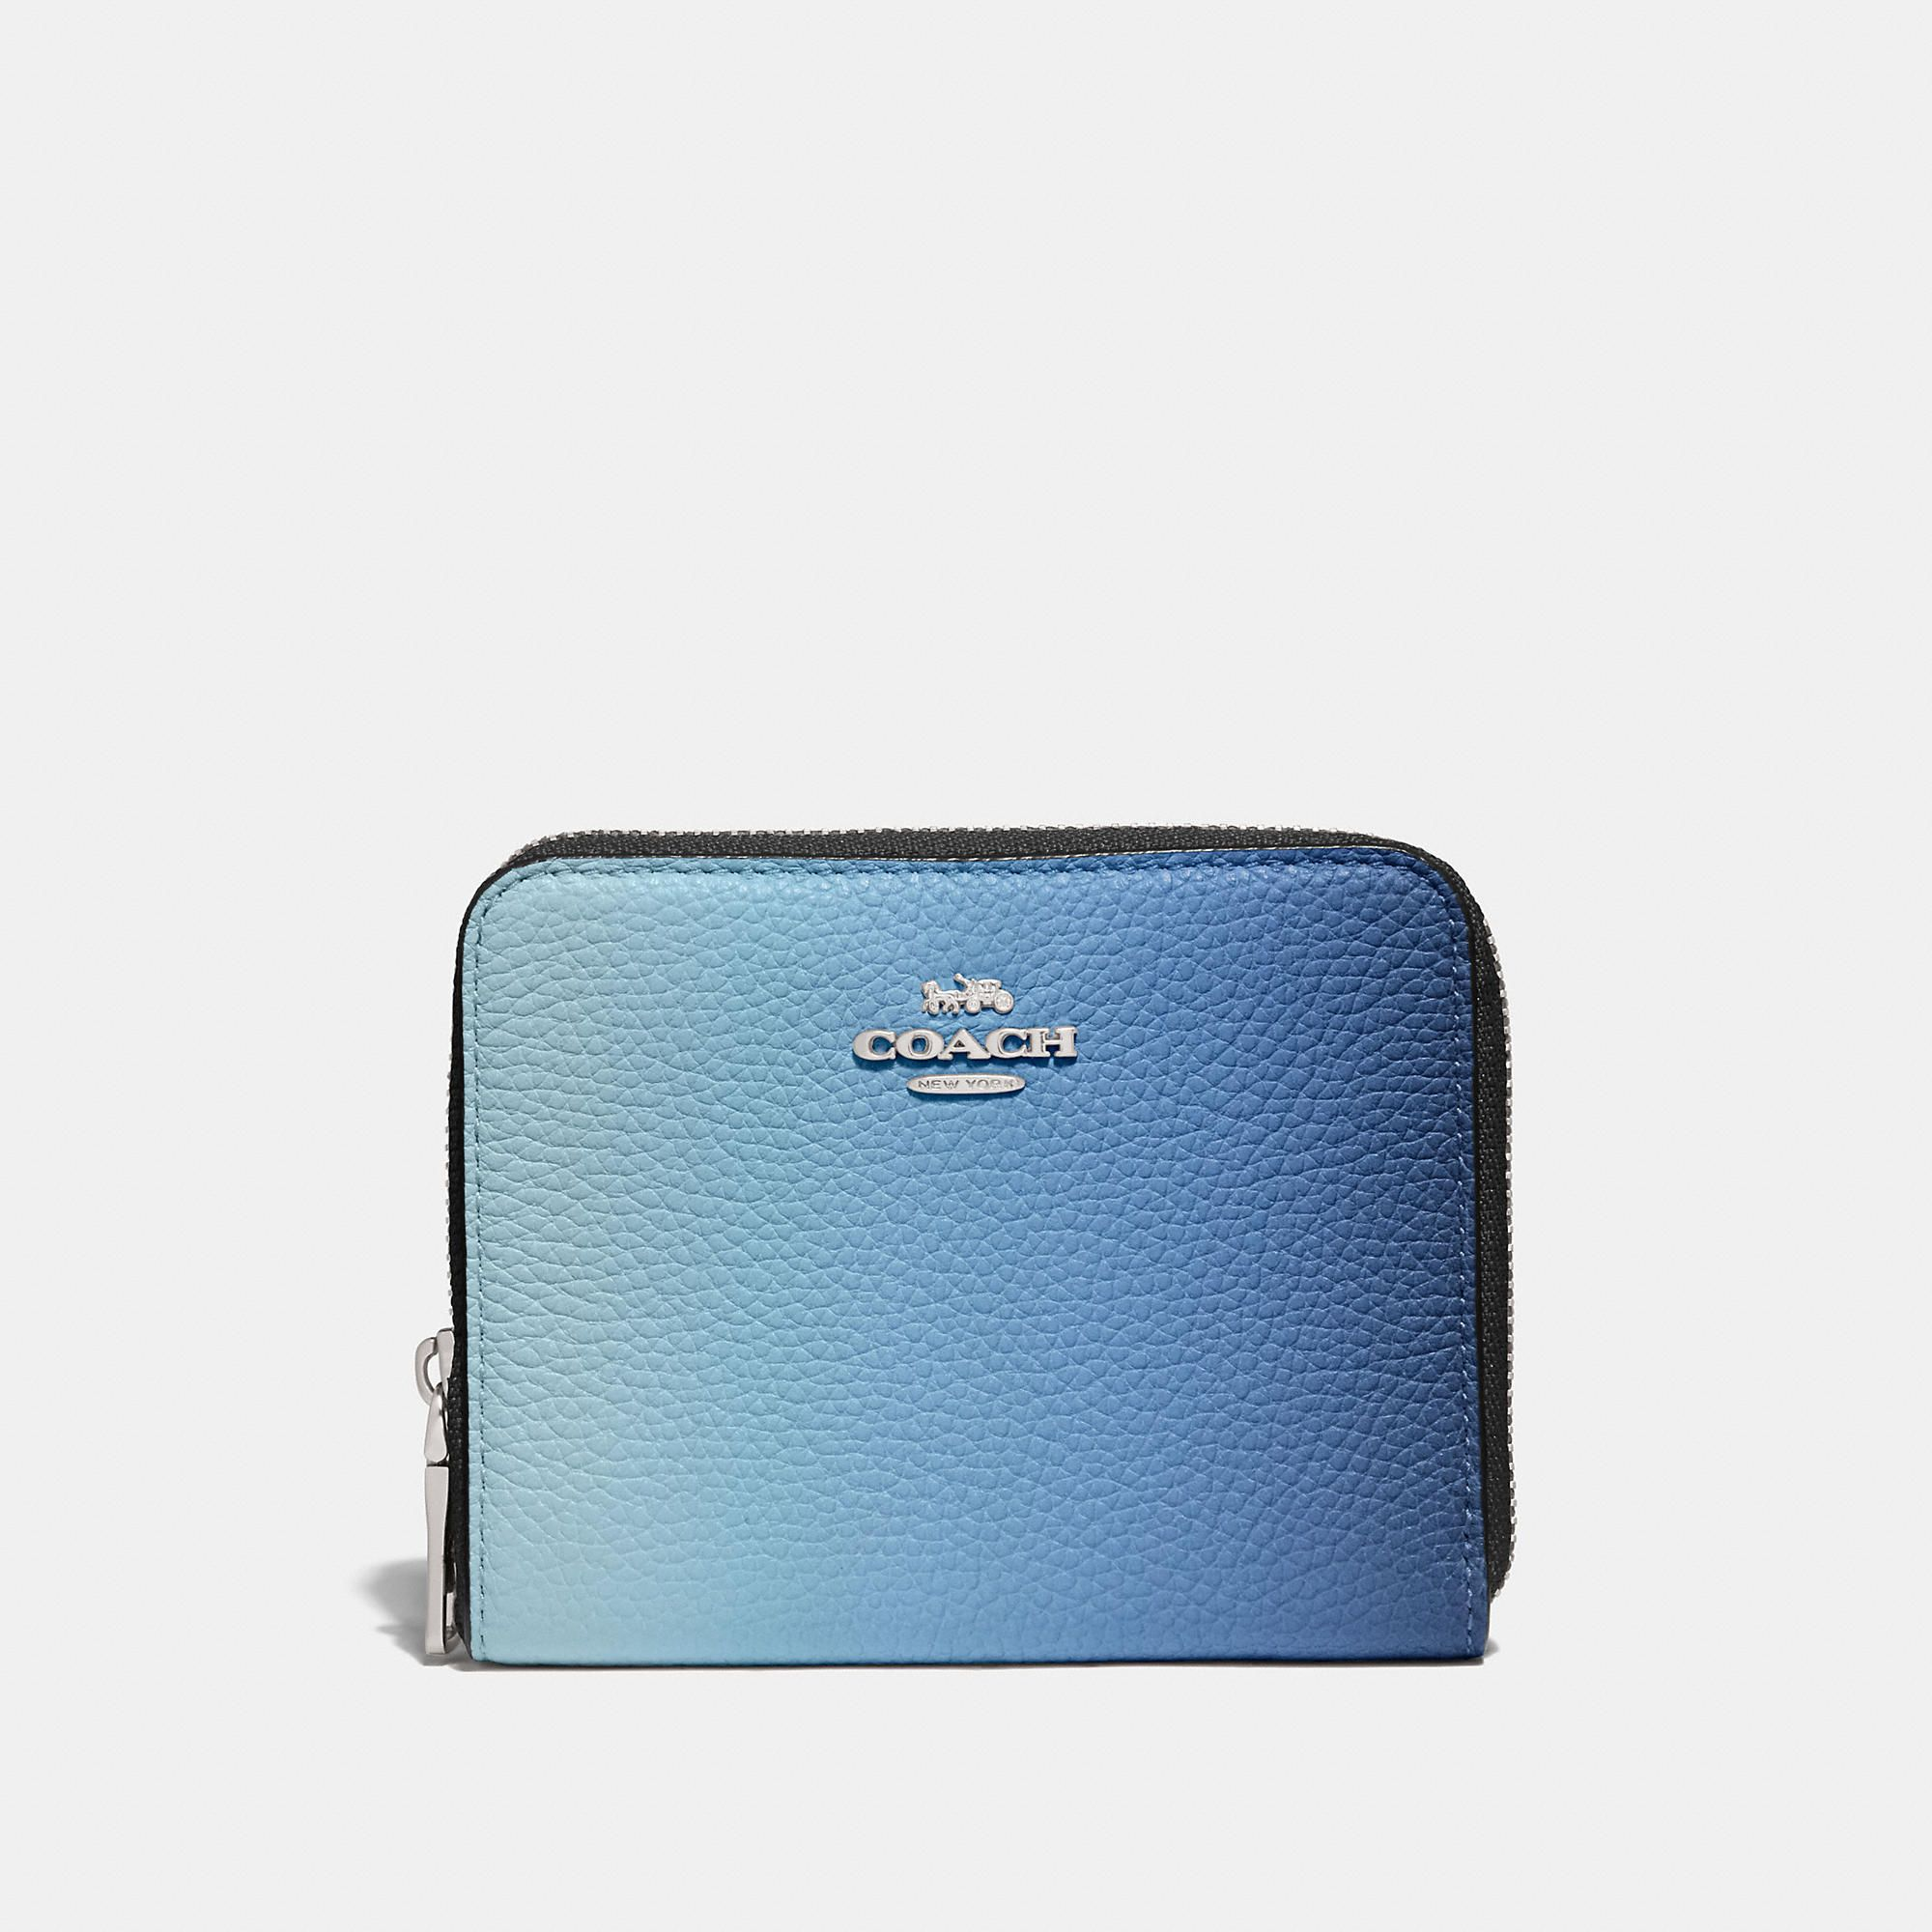 aa57ba09b7 Small zip around wallet with ombre in 2019 | Products | Wallet, Zip ...